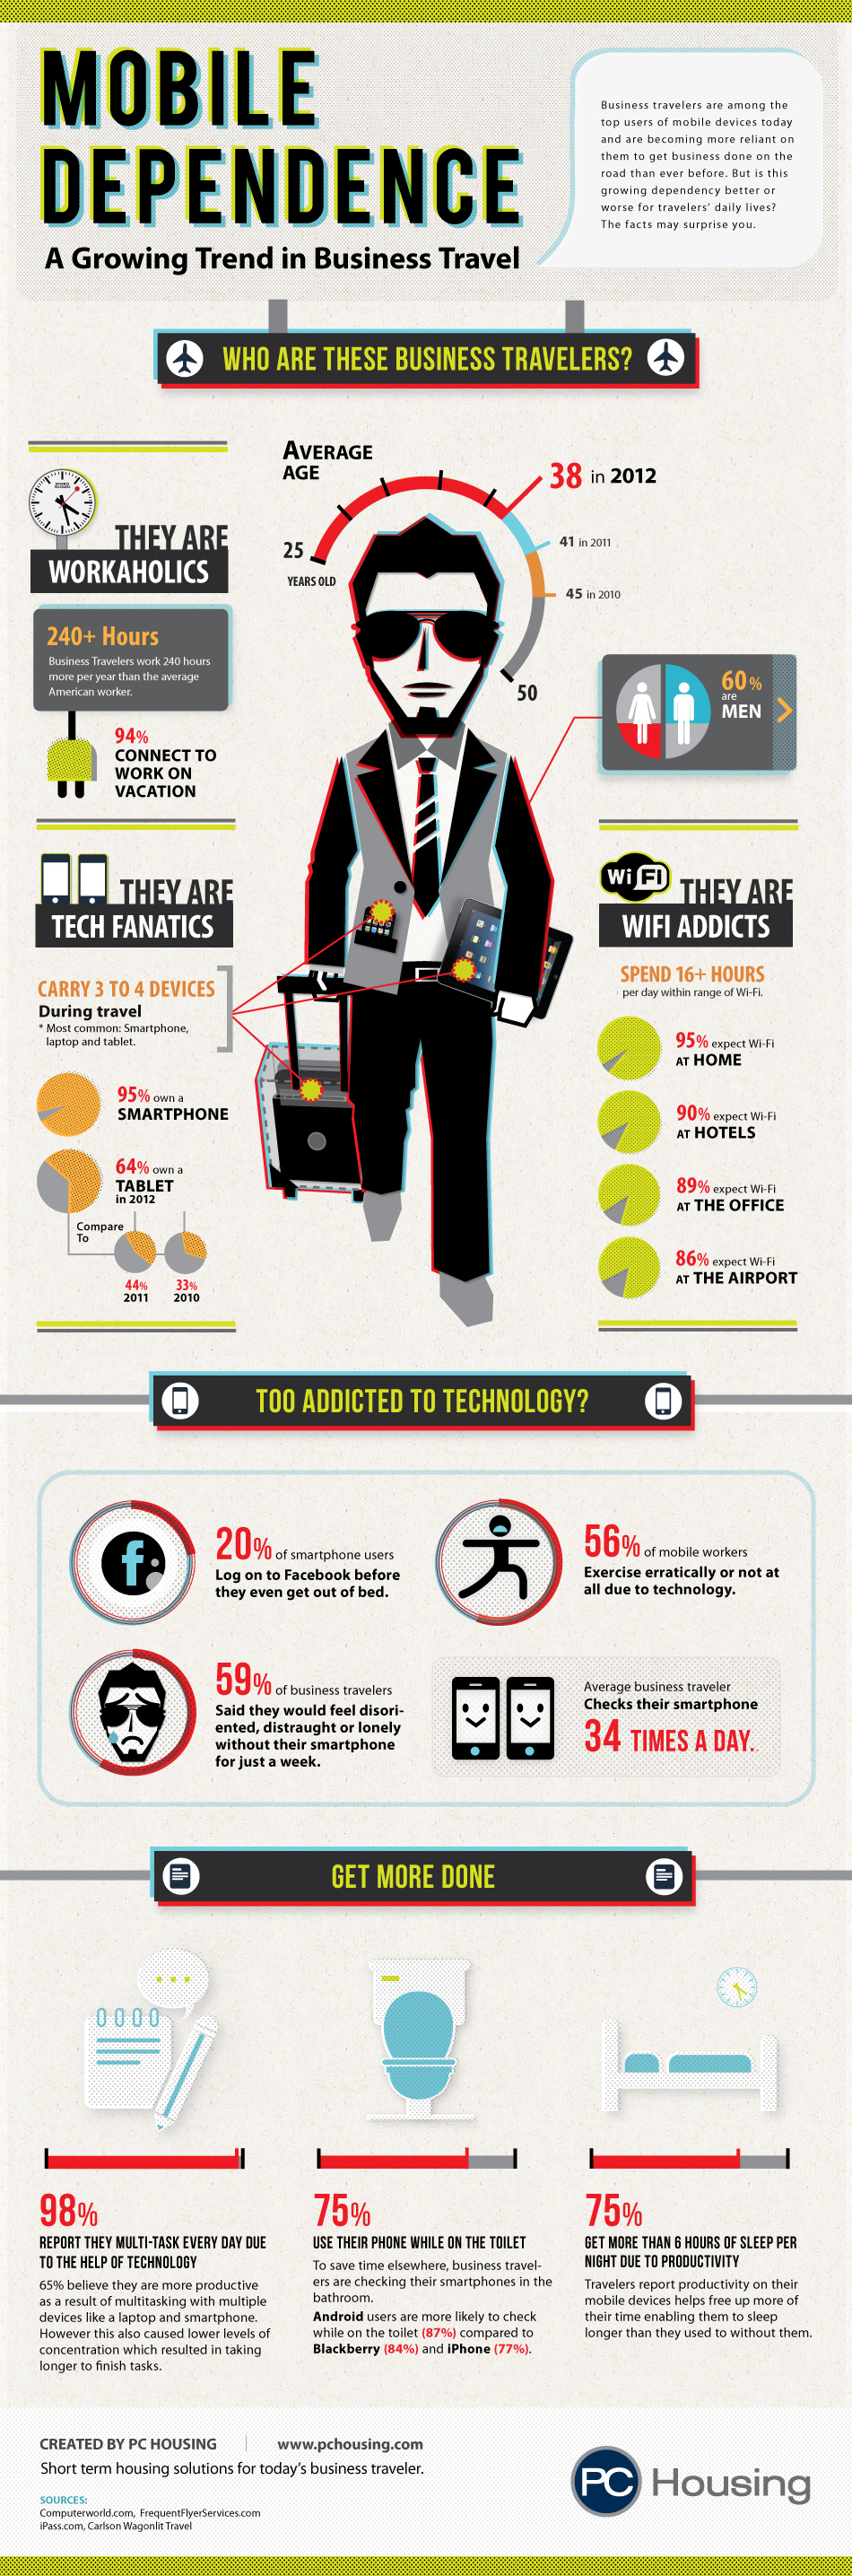 Mobile business travelers